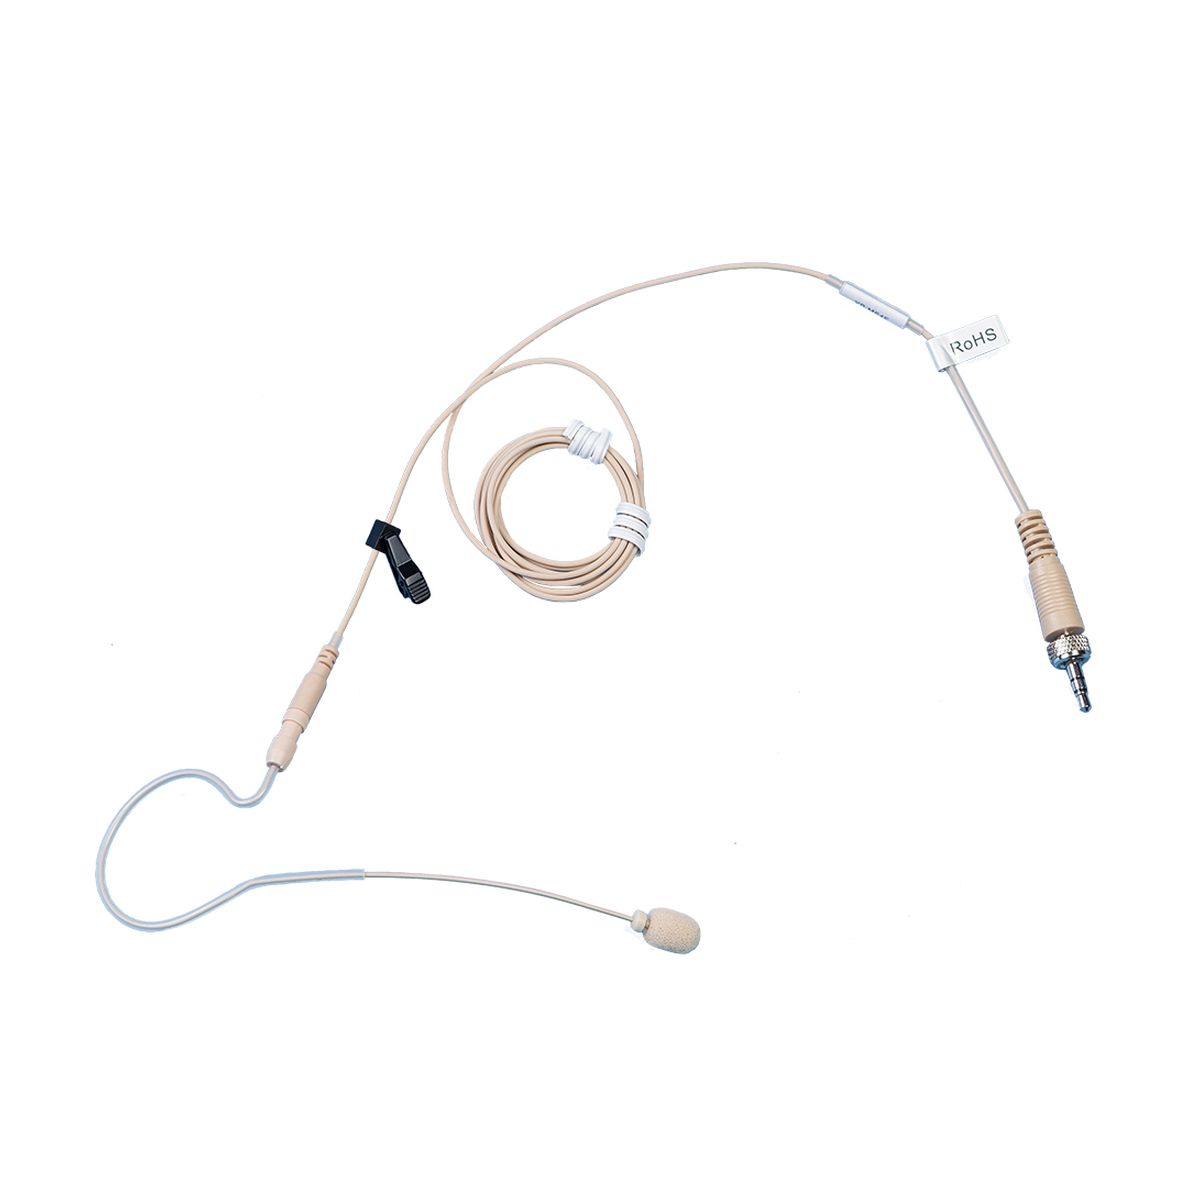 EARSET MIC with S4-SERIES PLUG